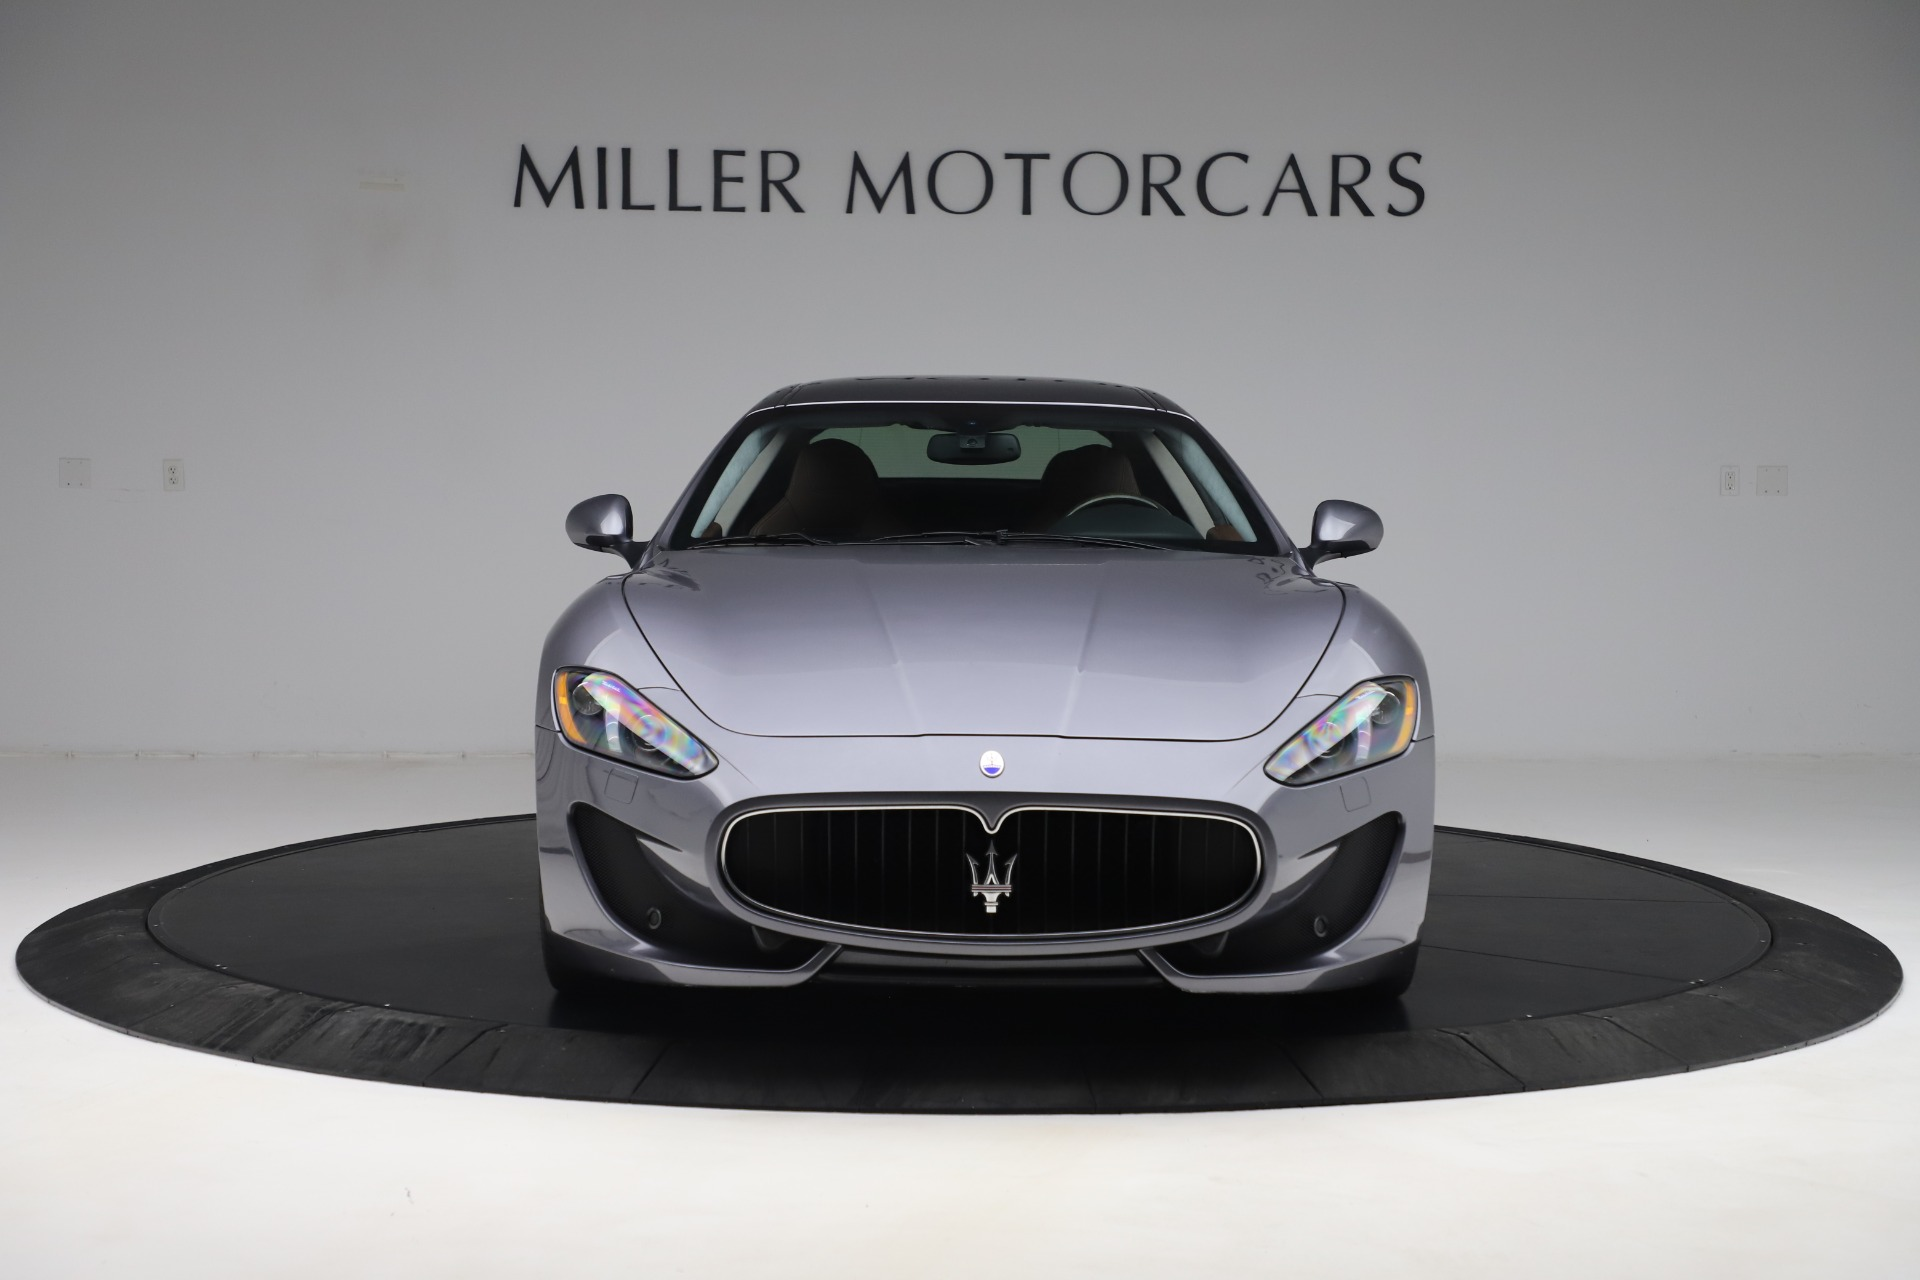 New 2016 Maserati GranTurismo Sport- TEST DRIVE SPECIAL For Sale In Greenwich, CT 166_p12